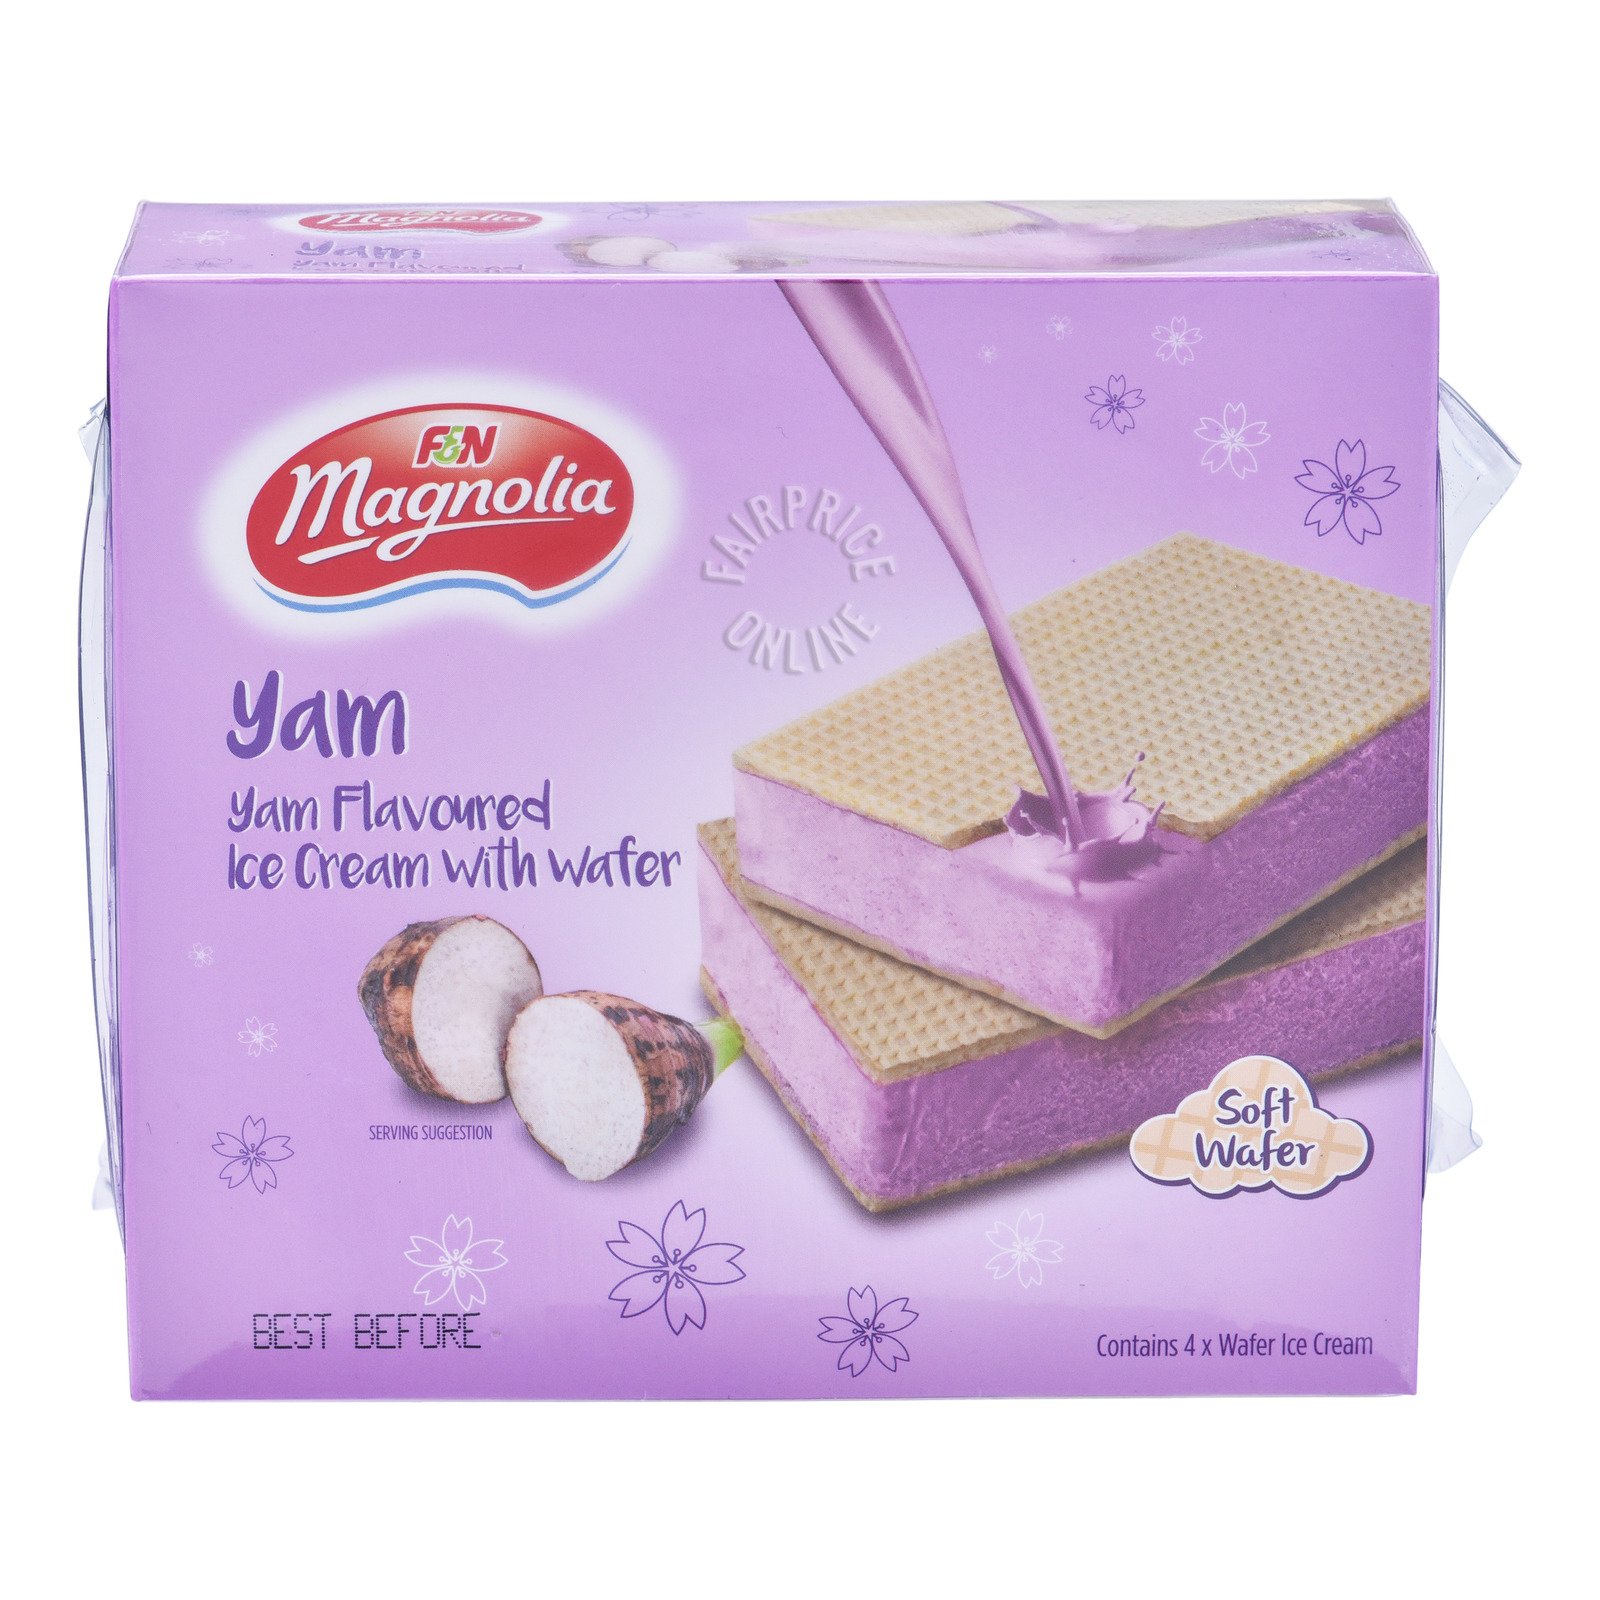 F&N Magnolia Ice Cream with Wafer - Yam